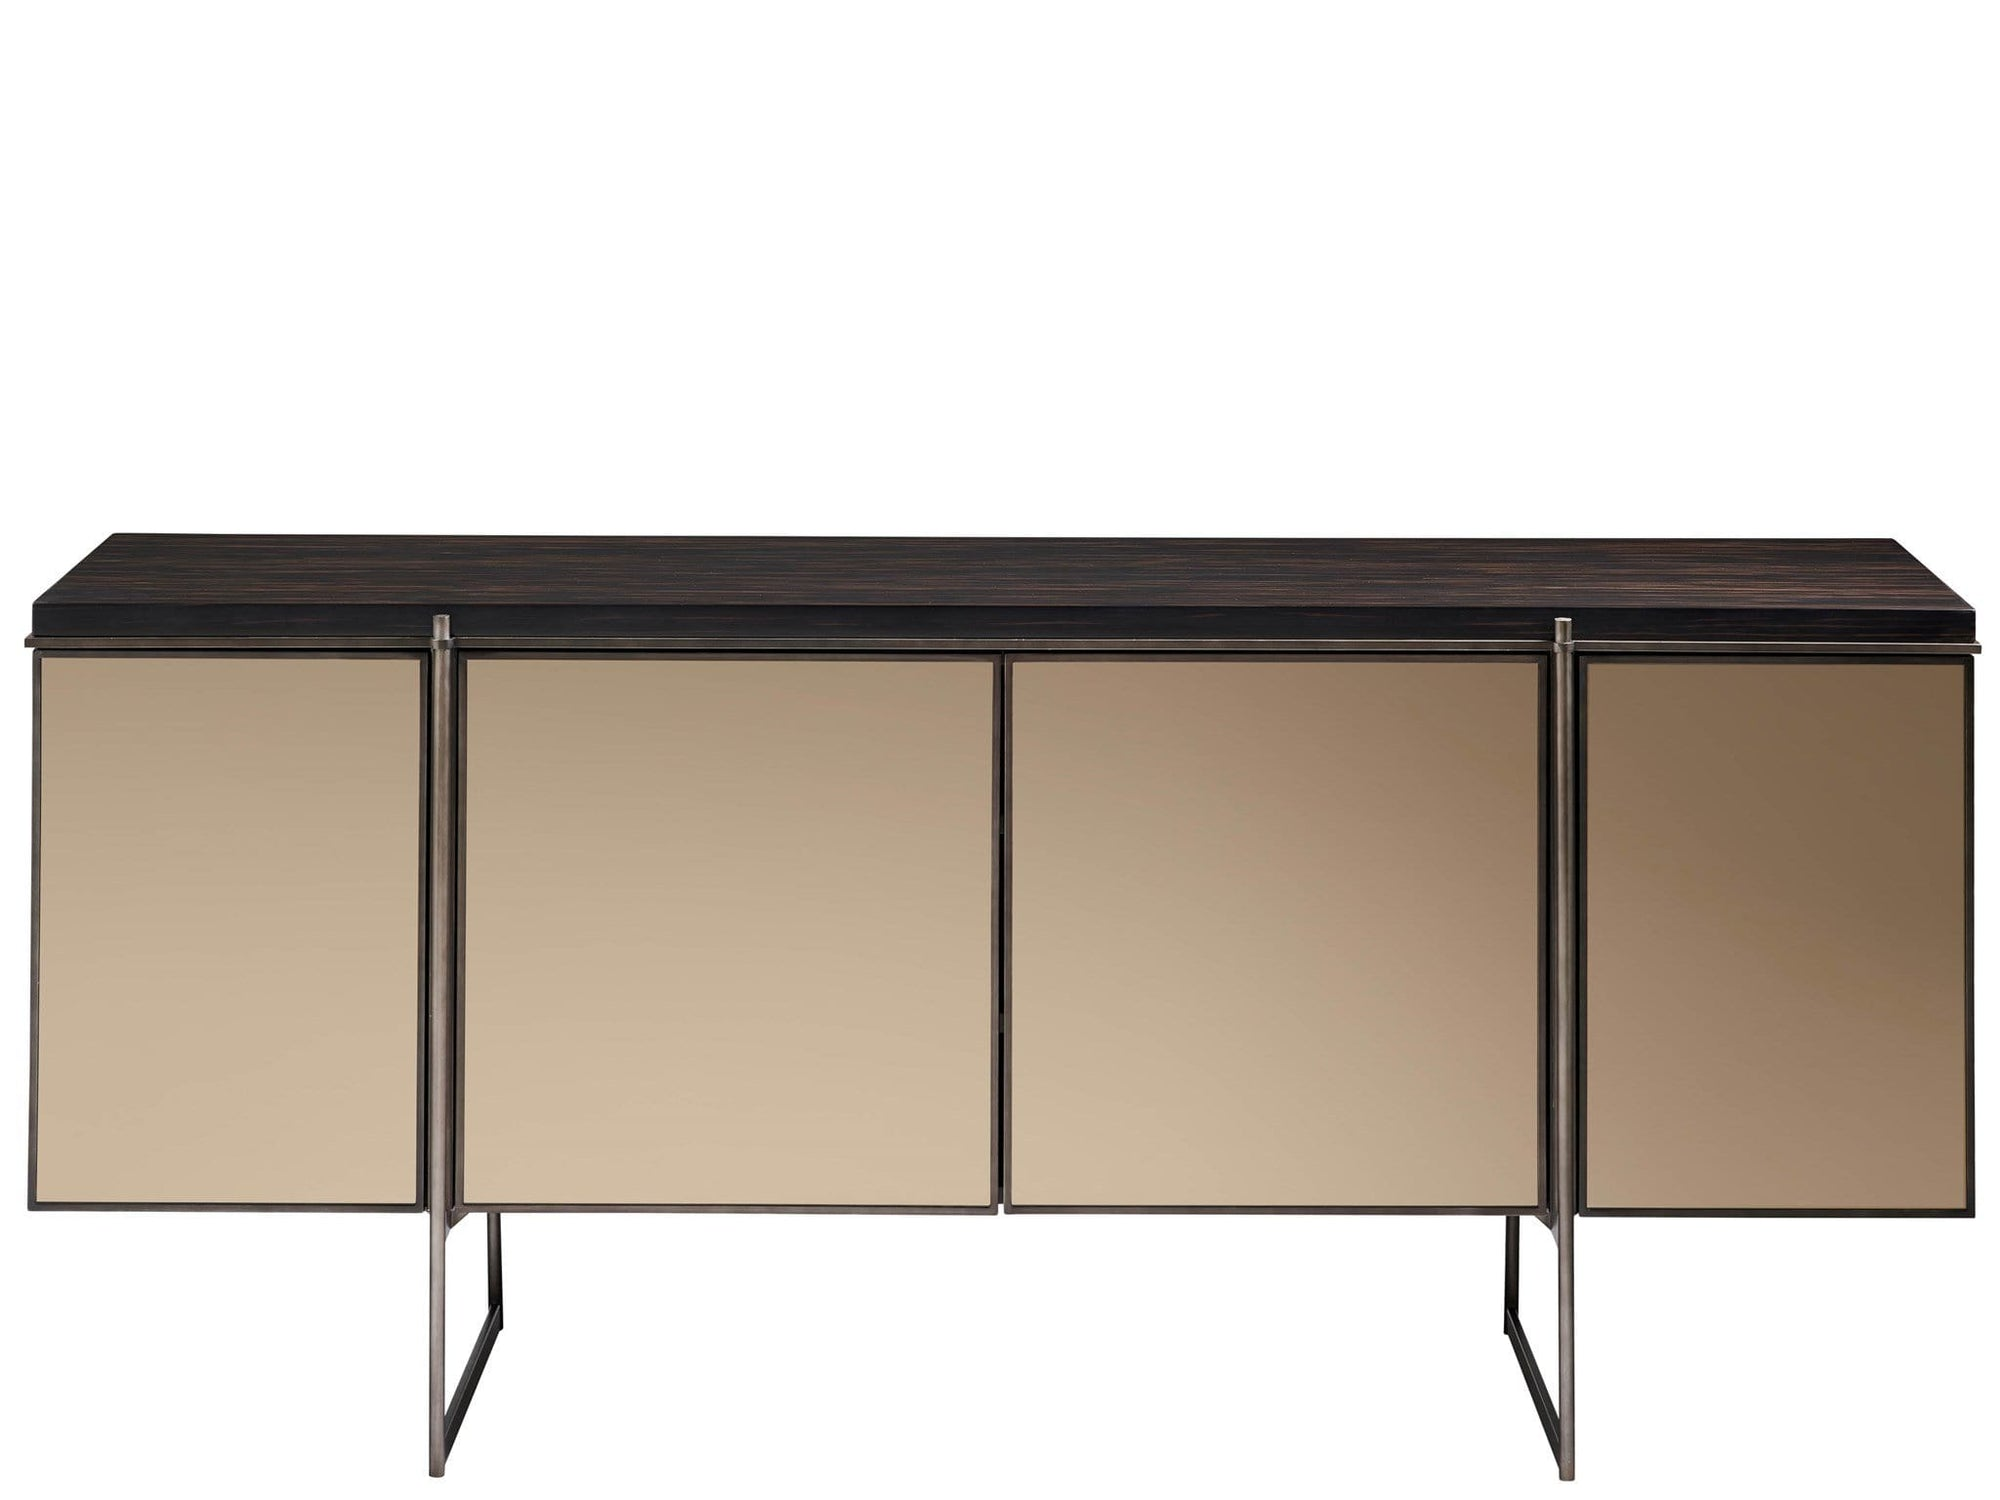 Alchemy Living Alchemy Living Urbain Bogota Sideboard - Beige and Brown 807223